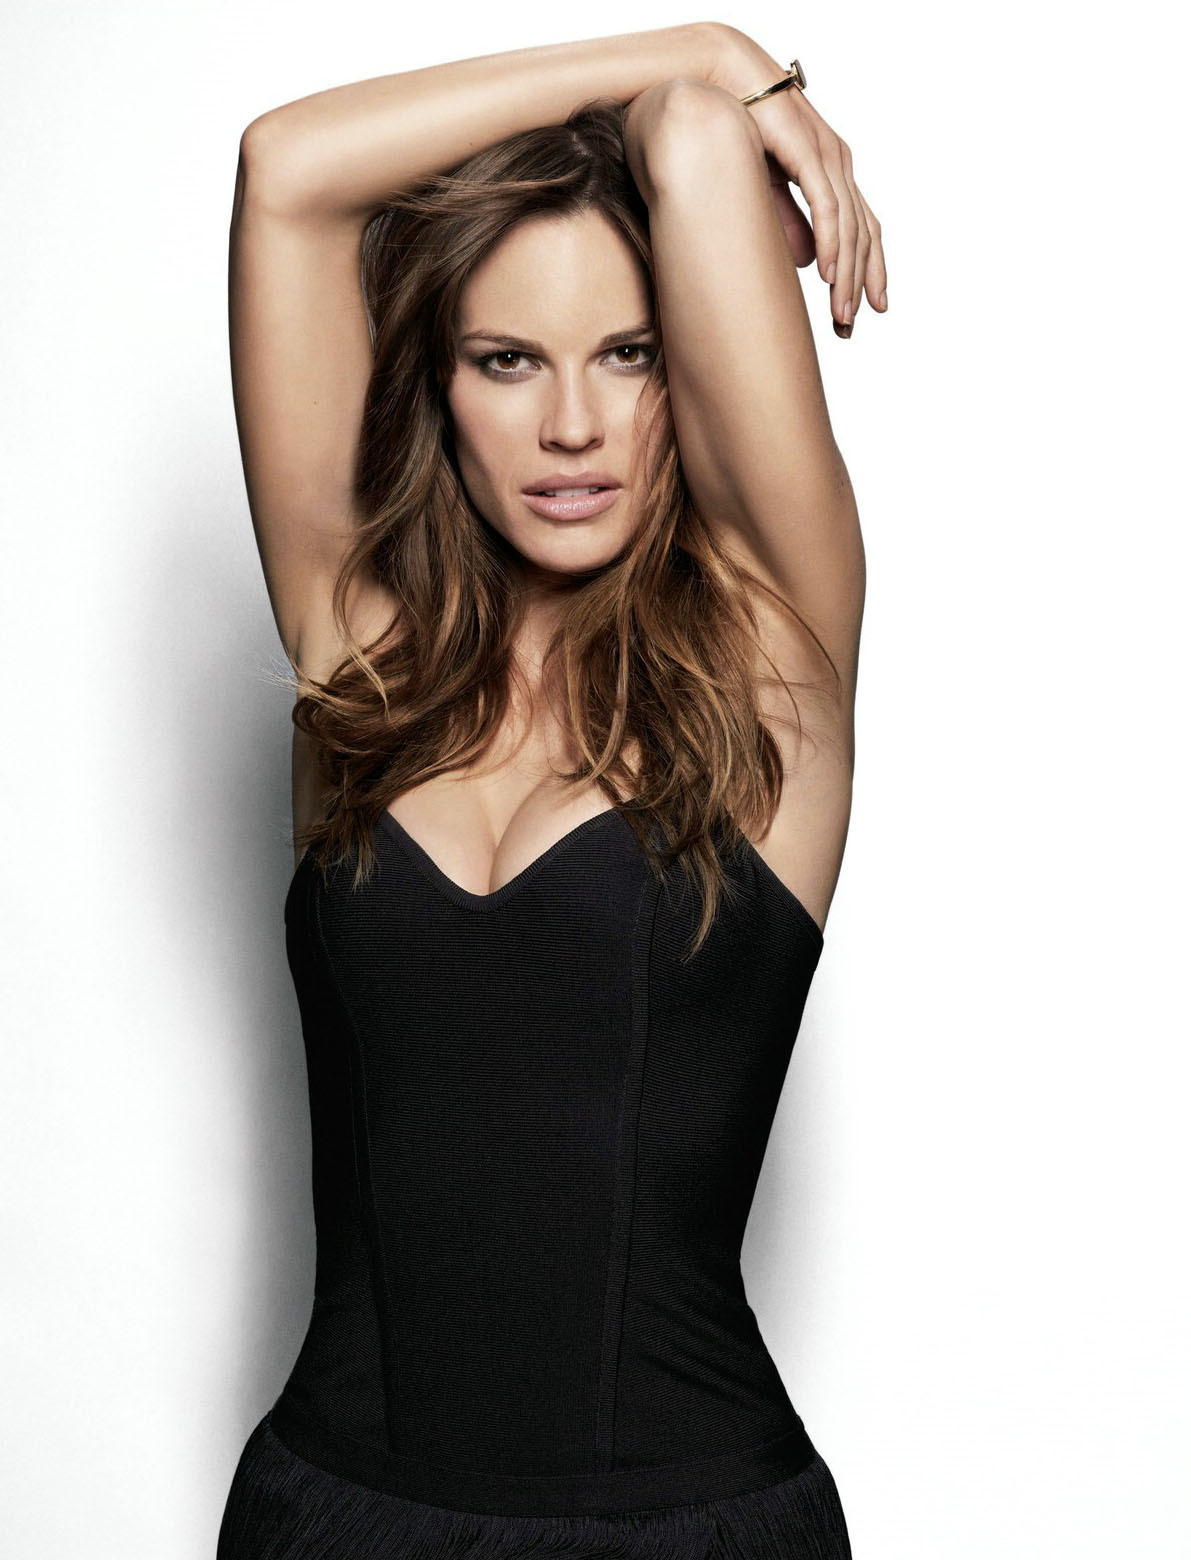 Hilary Swank Actresses Photo 8311455 Fanpop